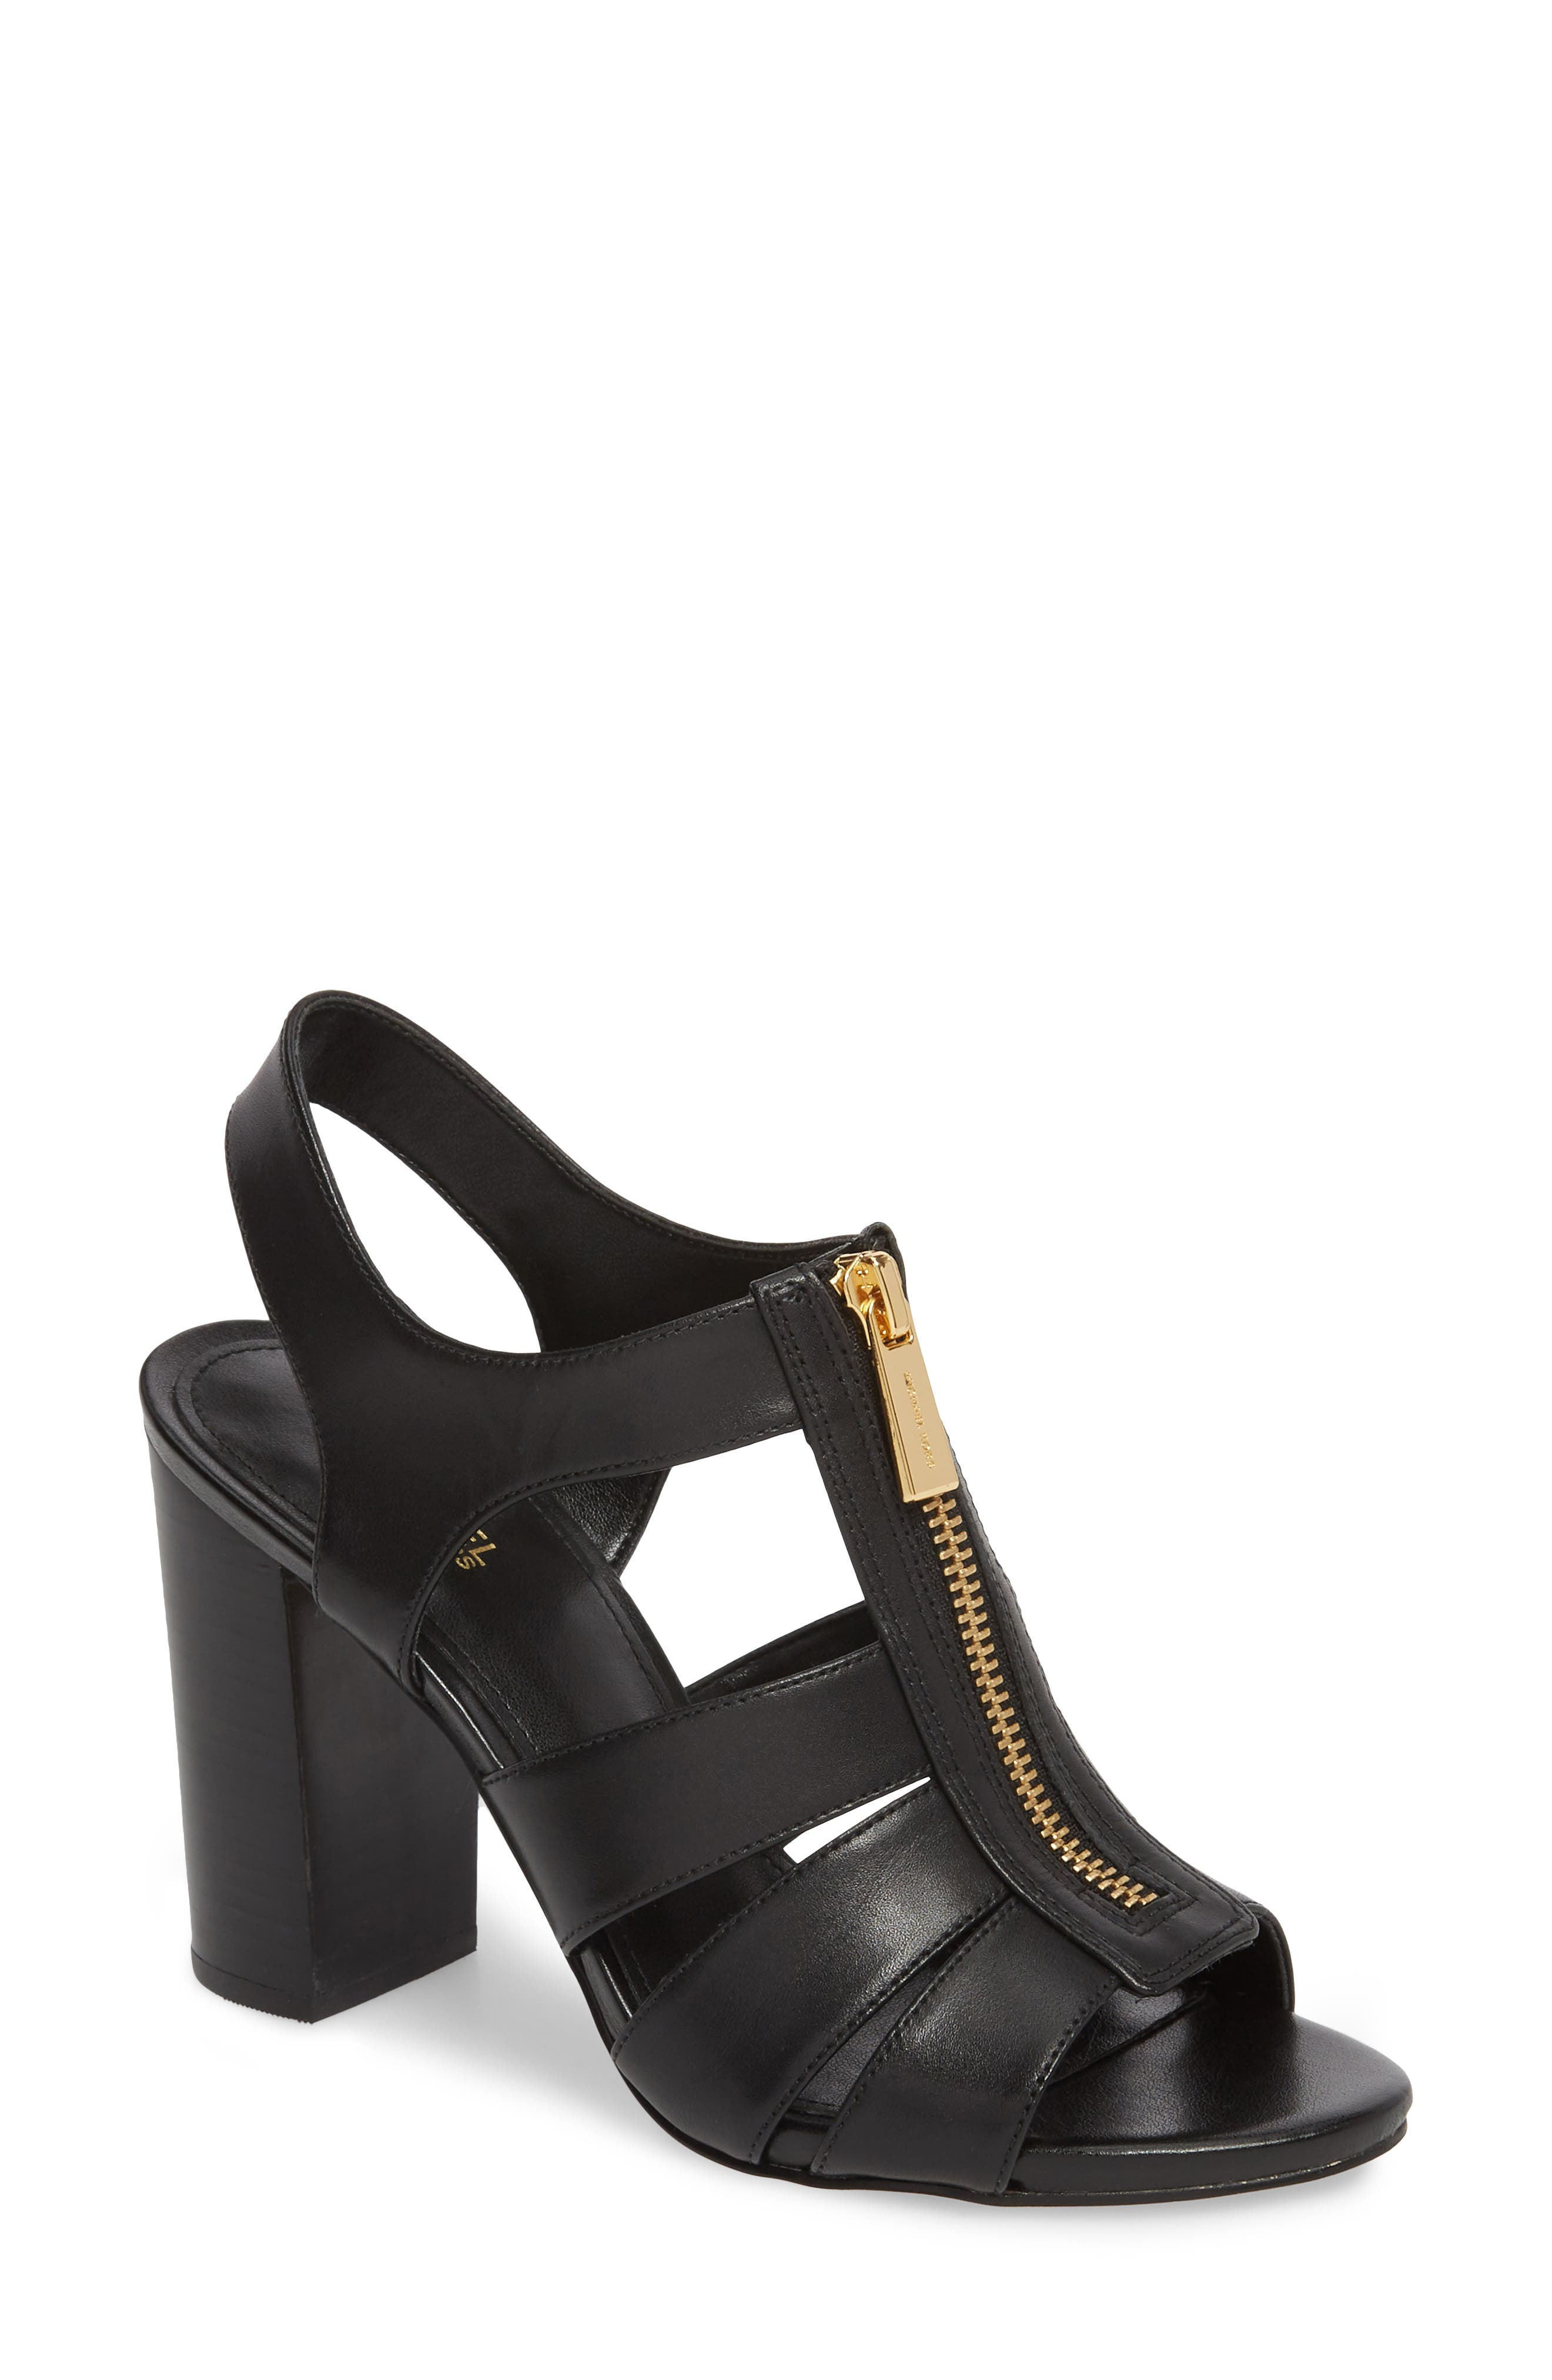 Damita Sandal,                         Main,                         color, Black